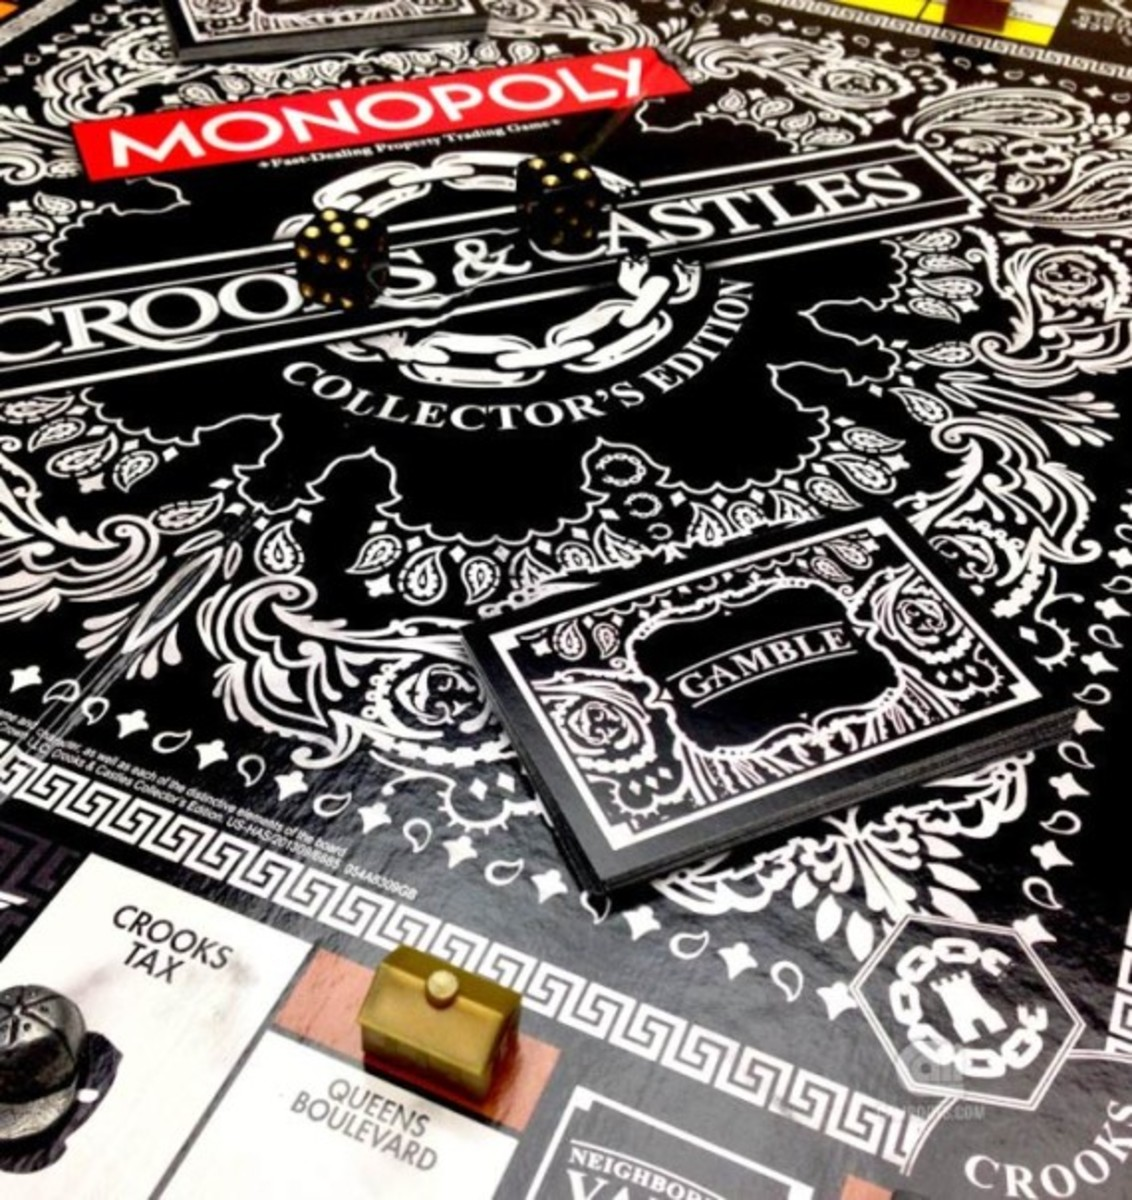 hasbro-crooks-and-castles-monopoly-02